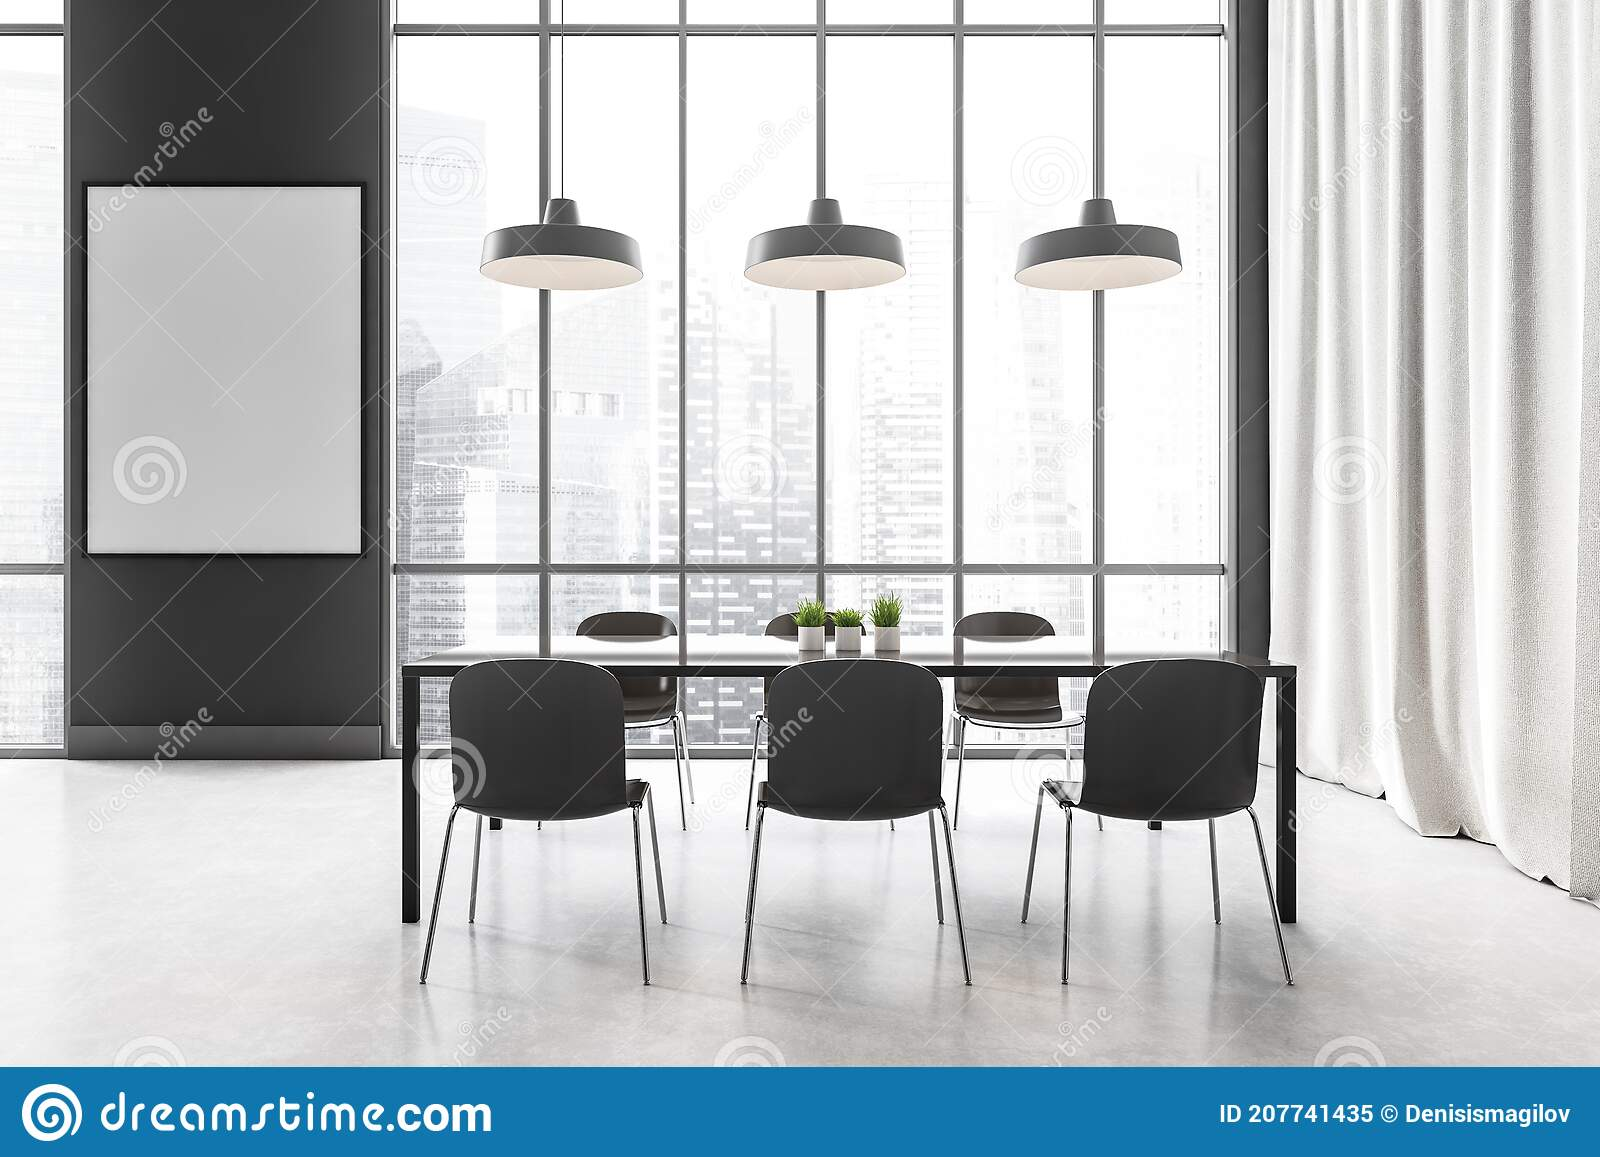 Mockup Frame In Dining Room With Black Furniture And White Curtains Near Window Stock Illustration Illustration Of Plant Render 207741435